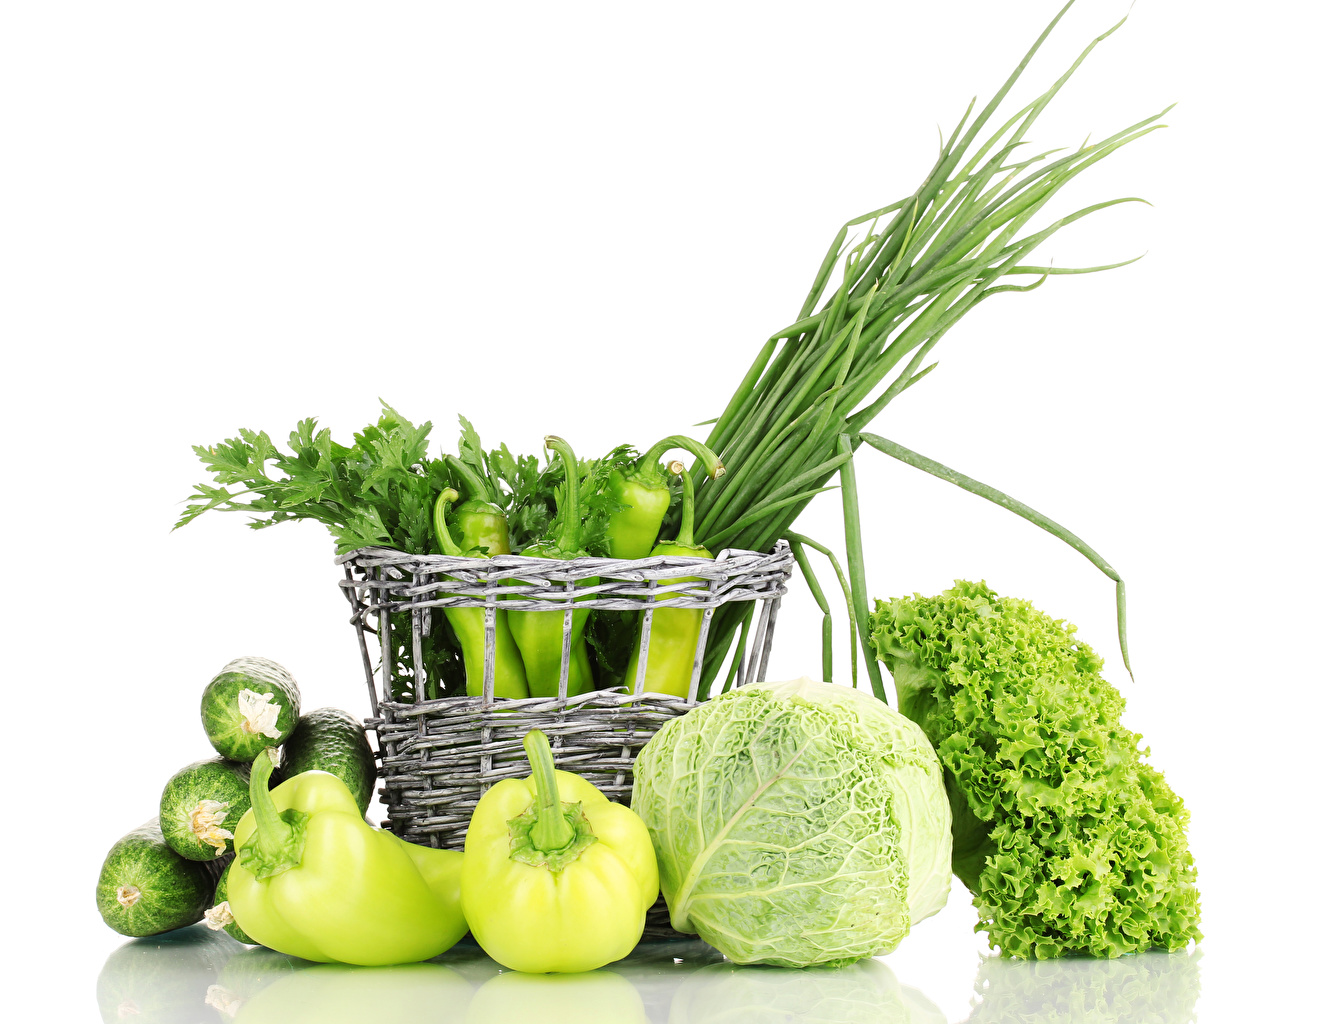 Pictures Green Cabbage Cucumbers Wicker basket Food Pepper Vegetables White background